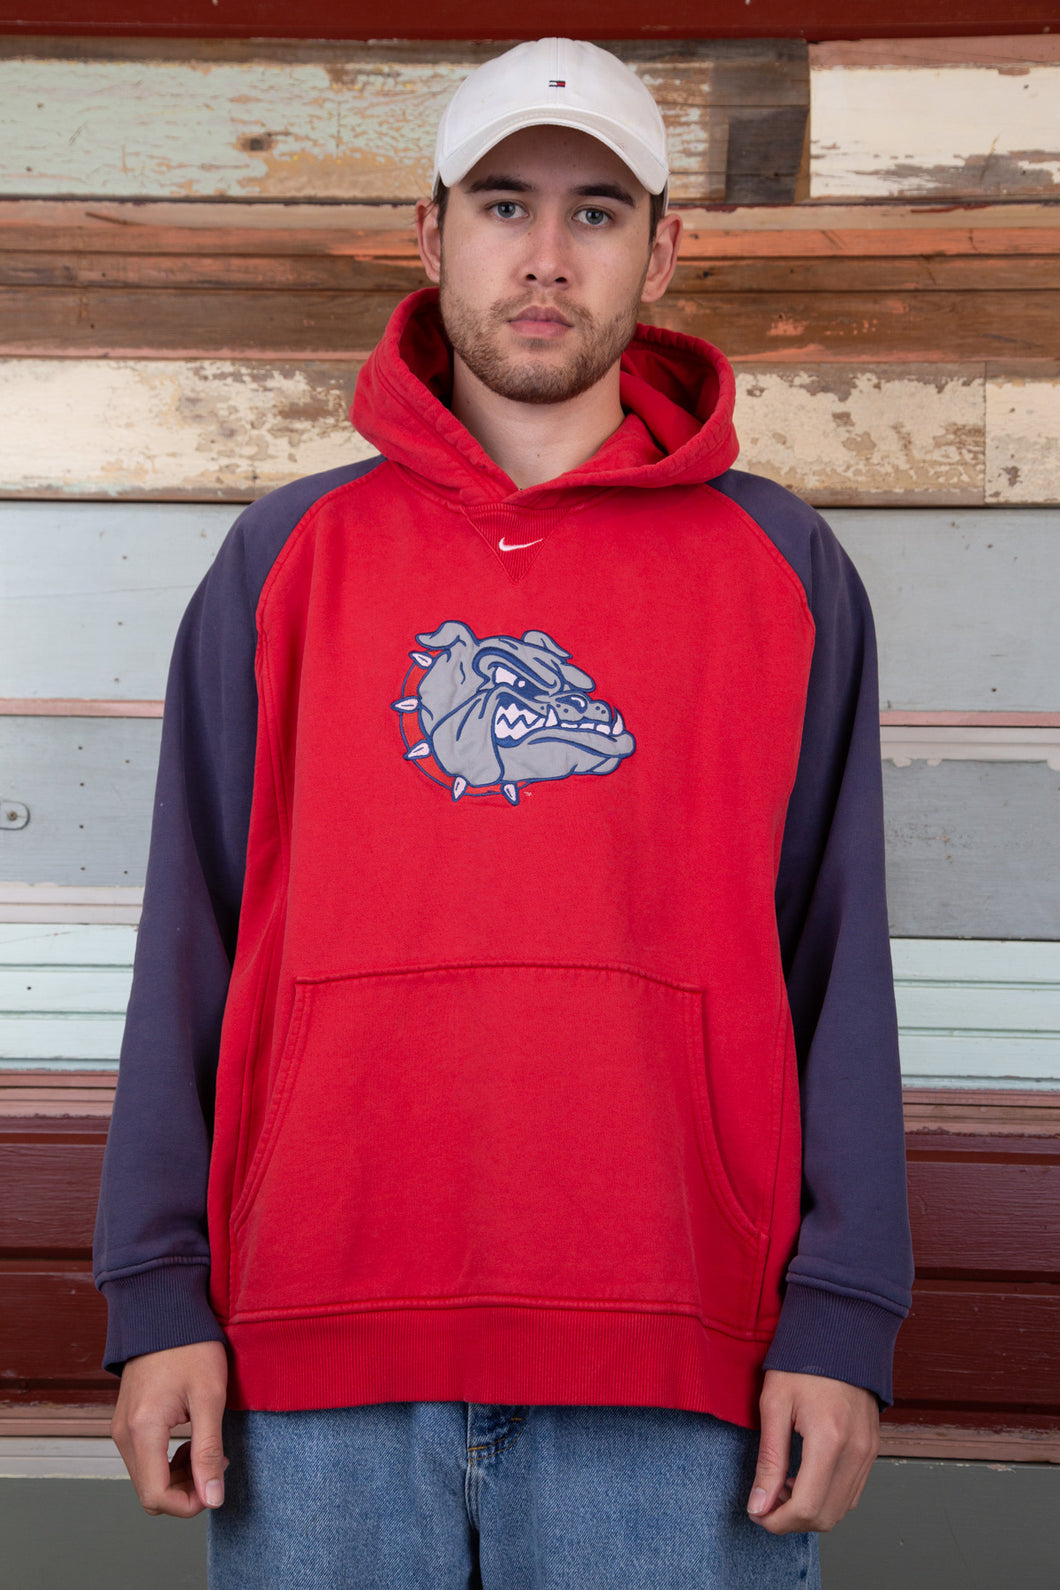 red hoodie with contrasting navy/indigo sleeves and large bulldog applique graphic on chest and small embroidered nike tick above